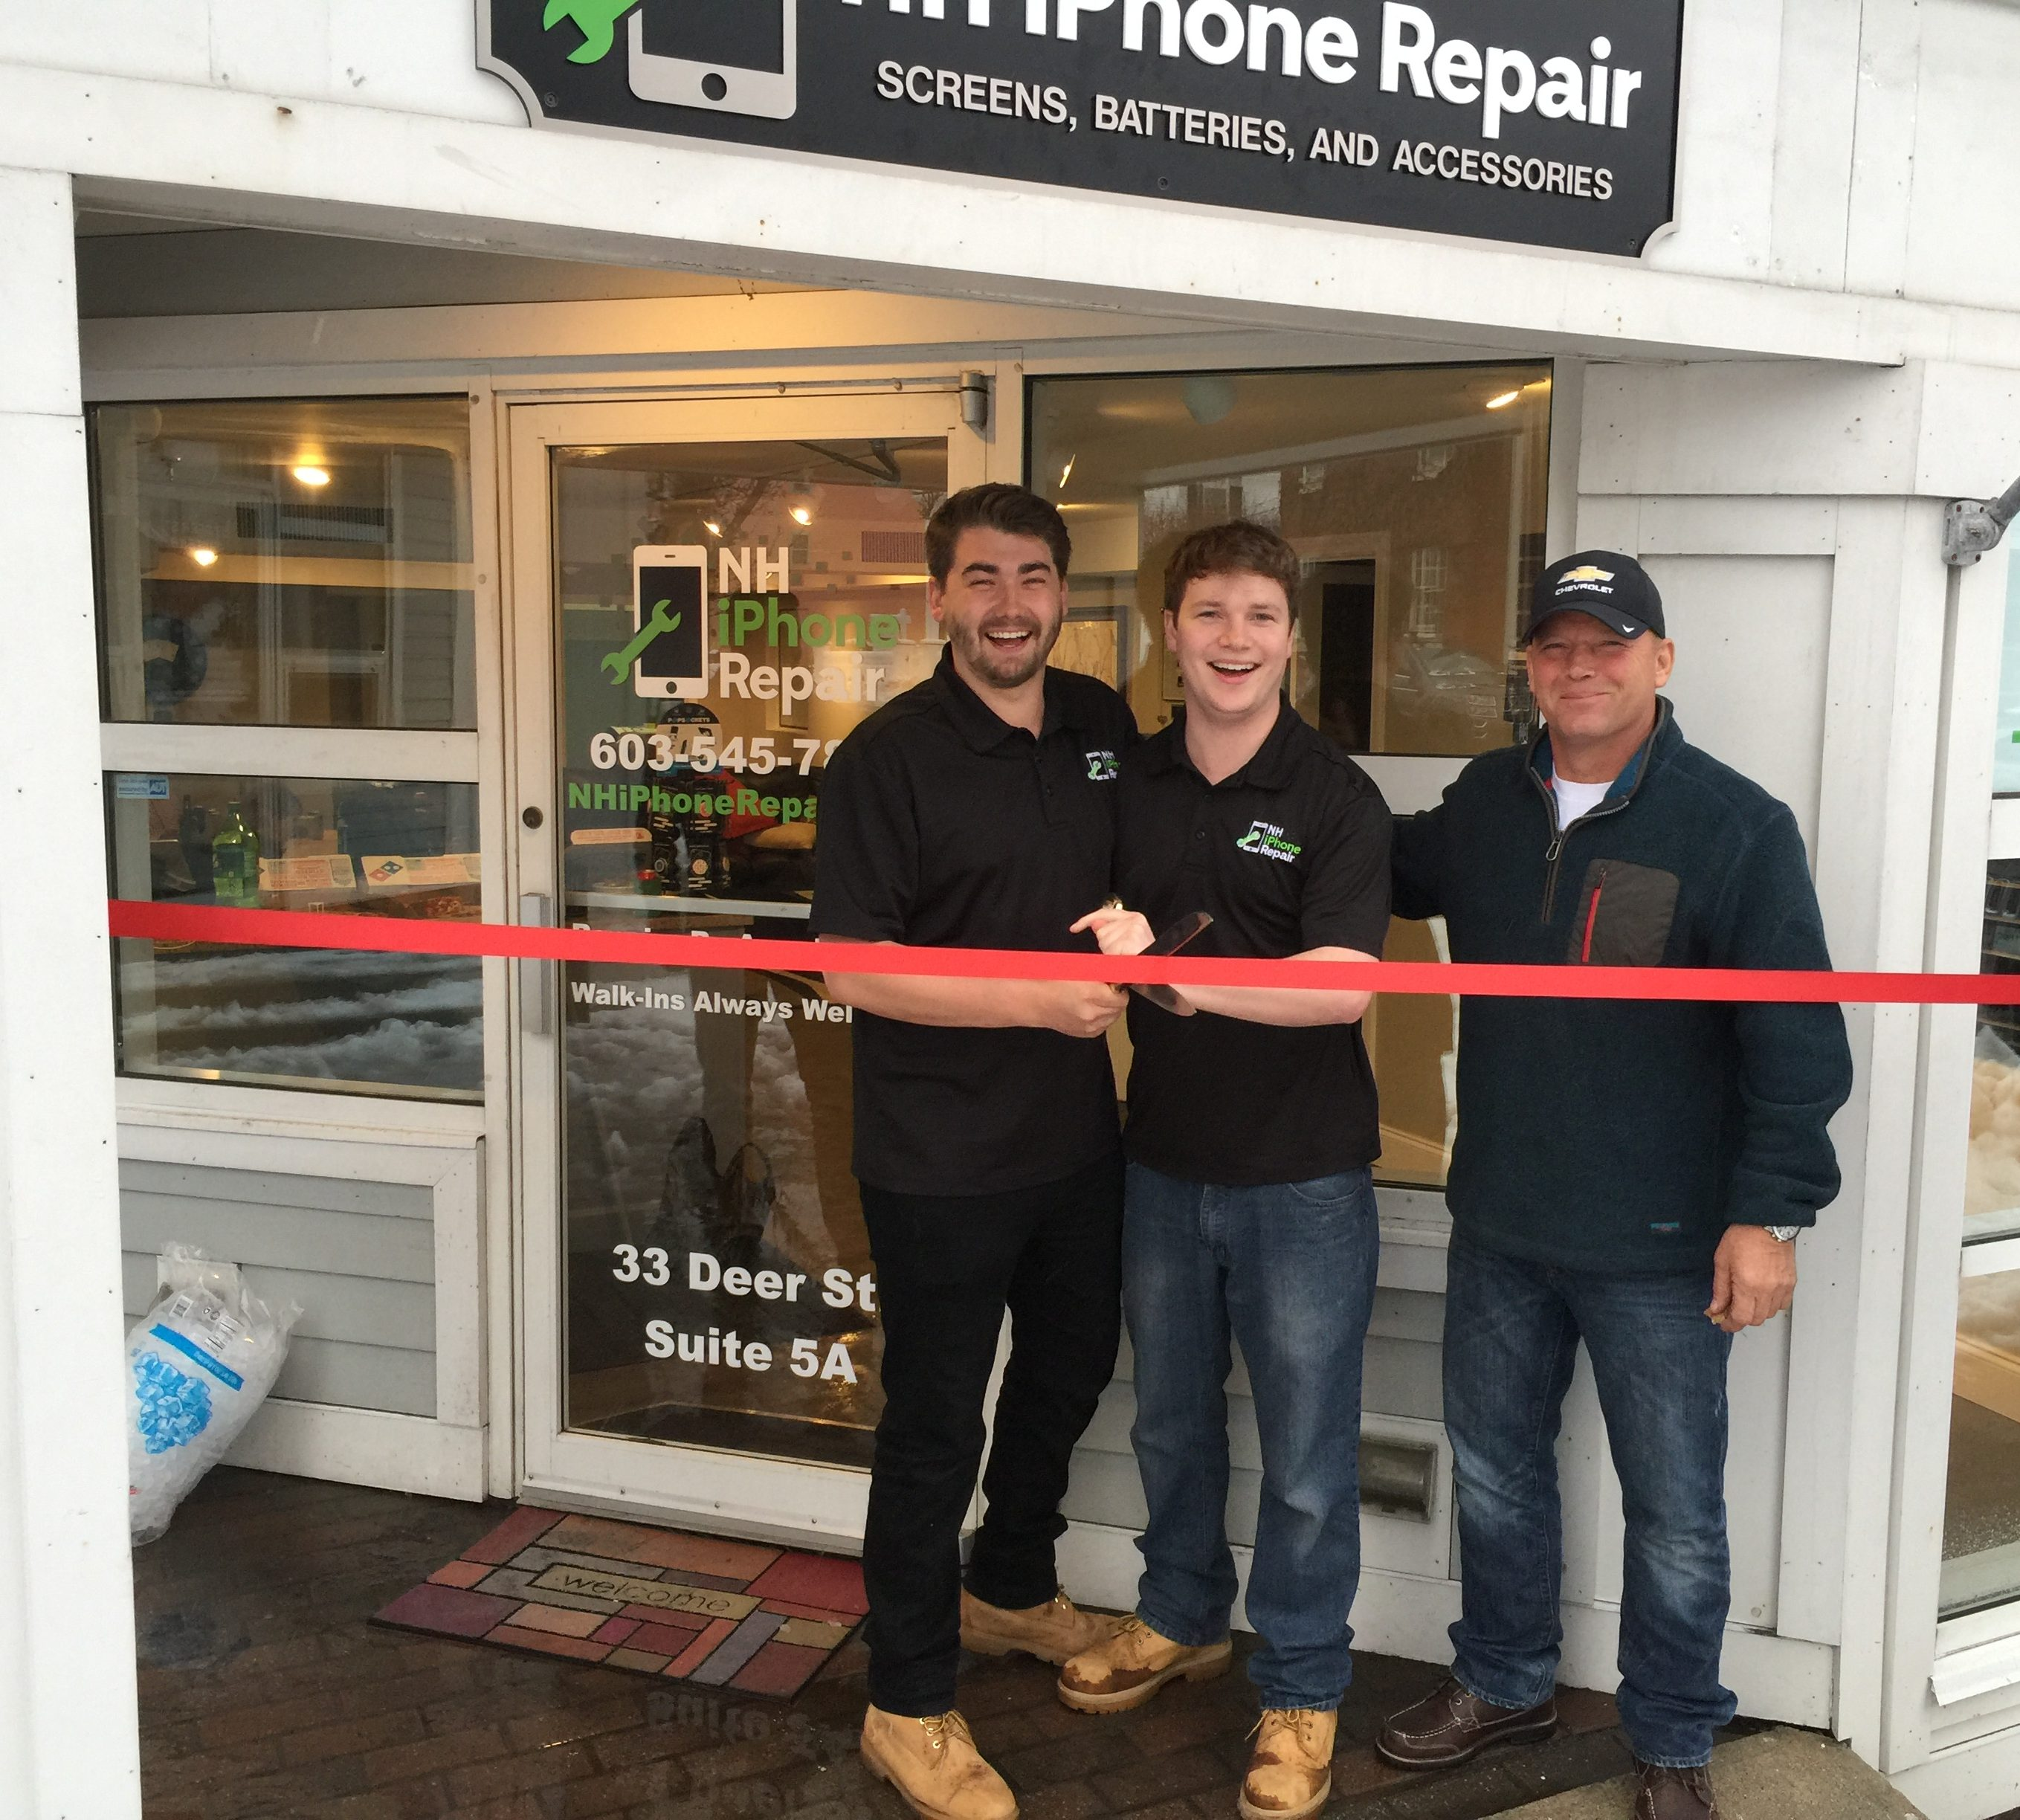 Grand opening of NH iPhone Repair. NH iPhone Repair owners cutting the red ribbon in front of the door